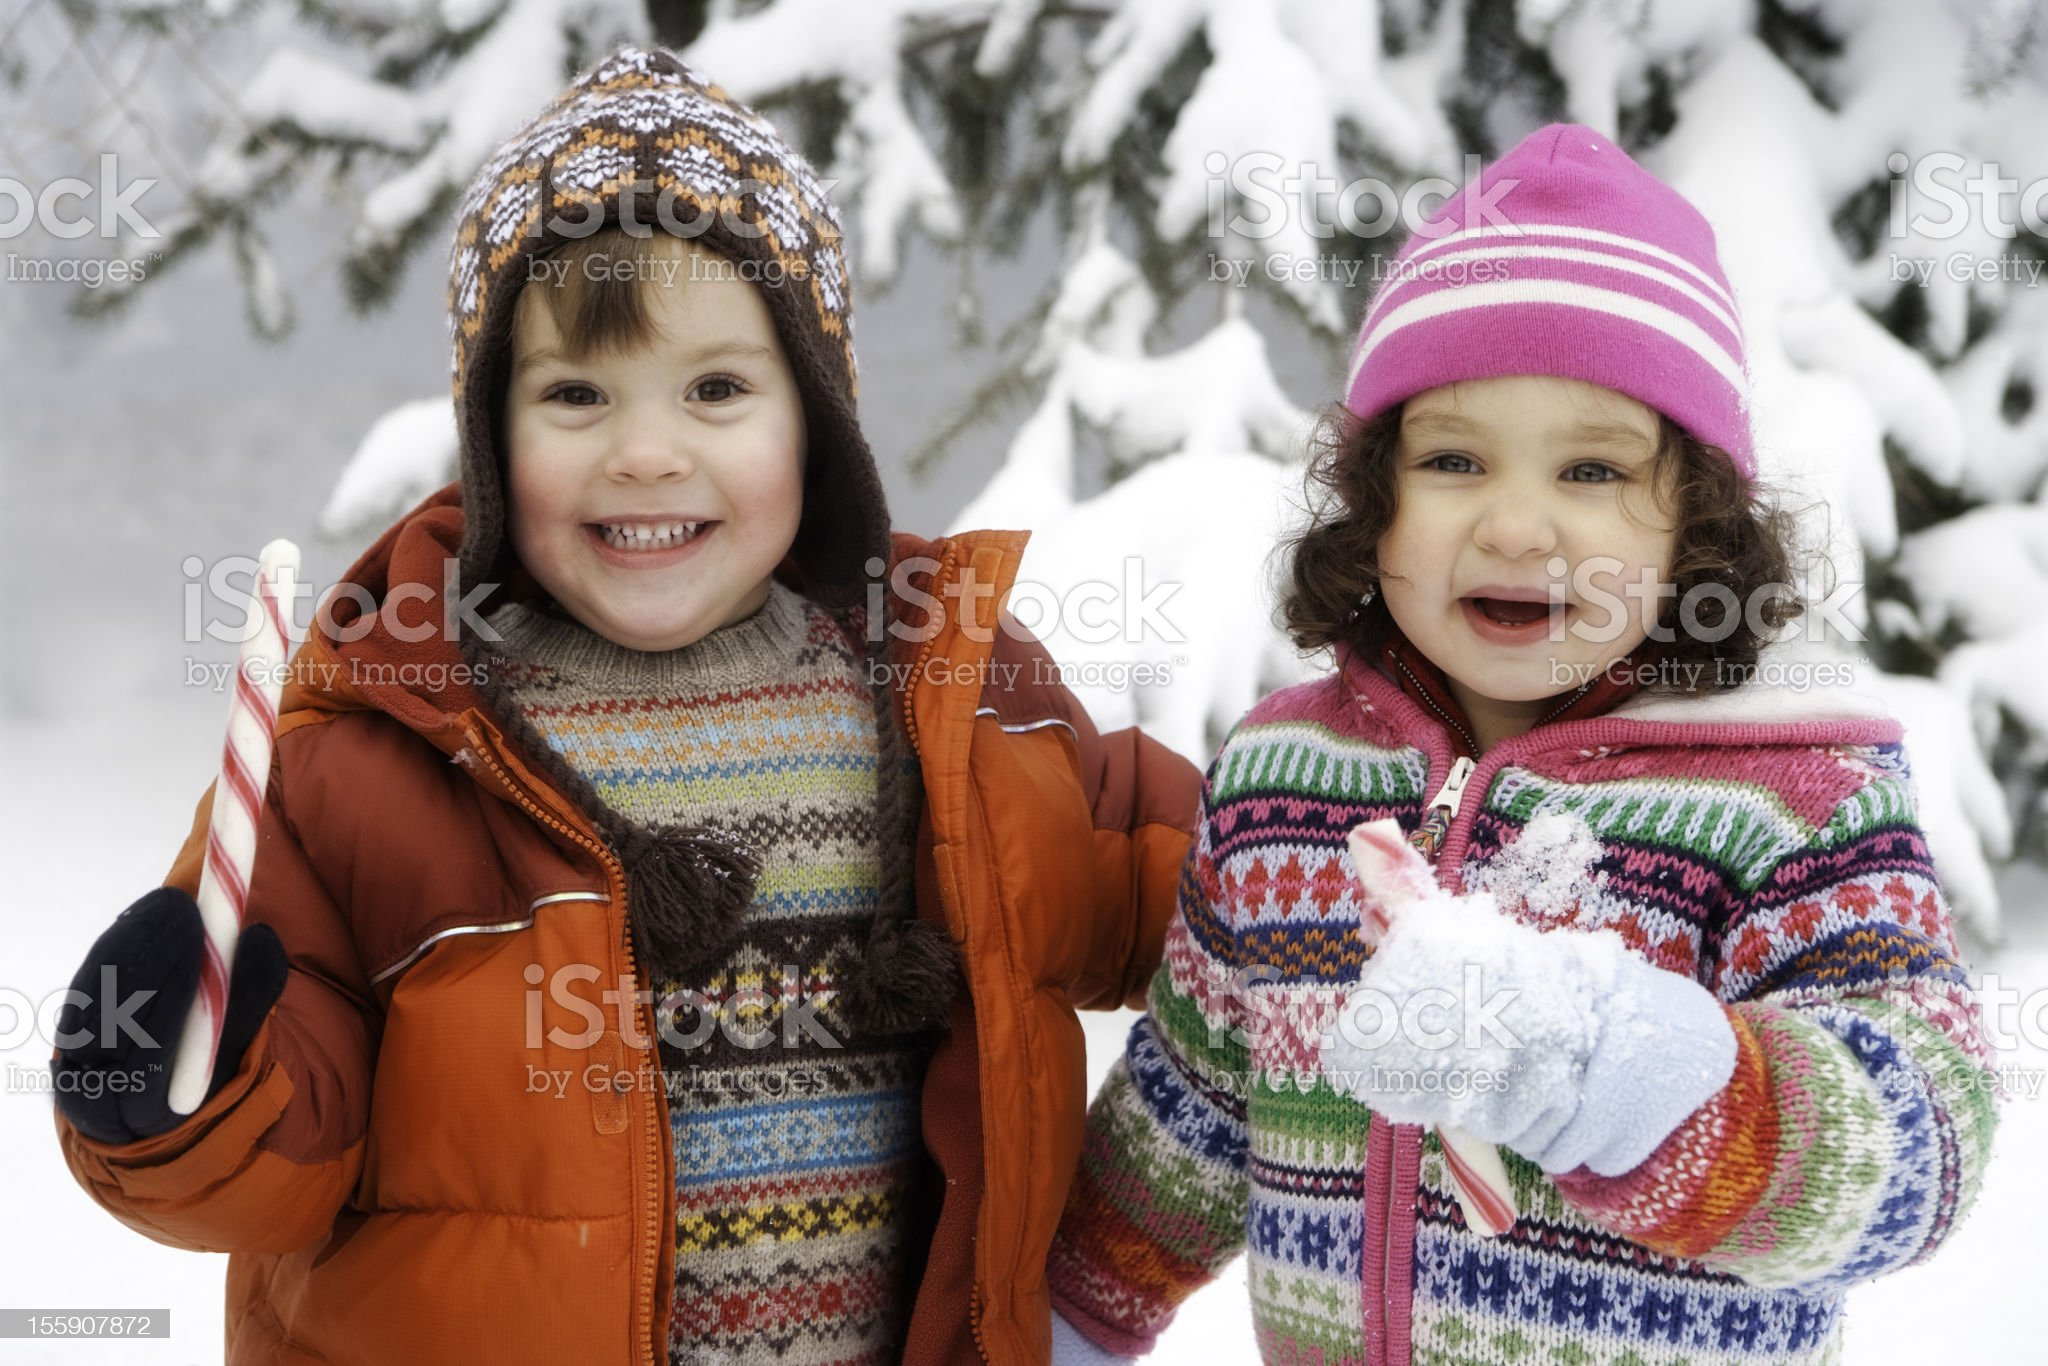 Adorable Little Girl and Boy Playing in the Snow Together royalty-free stock photo